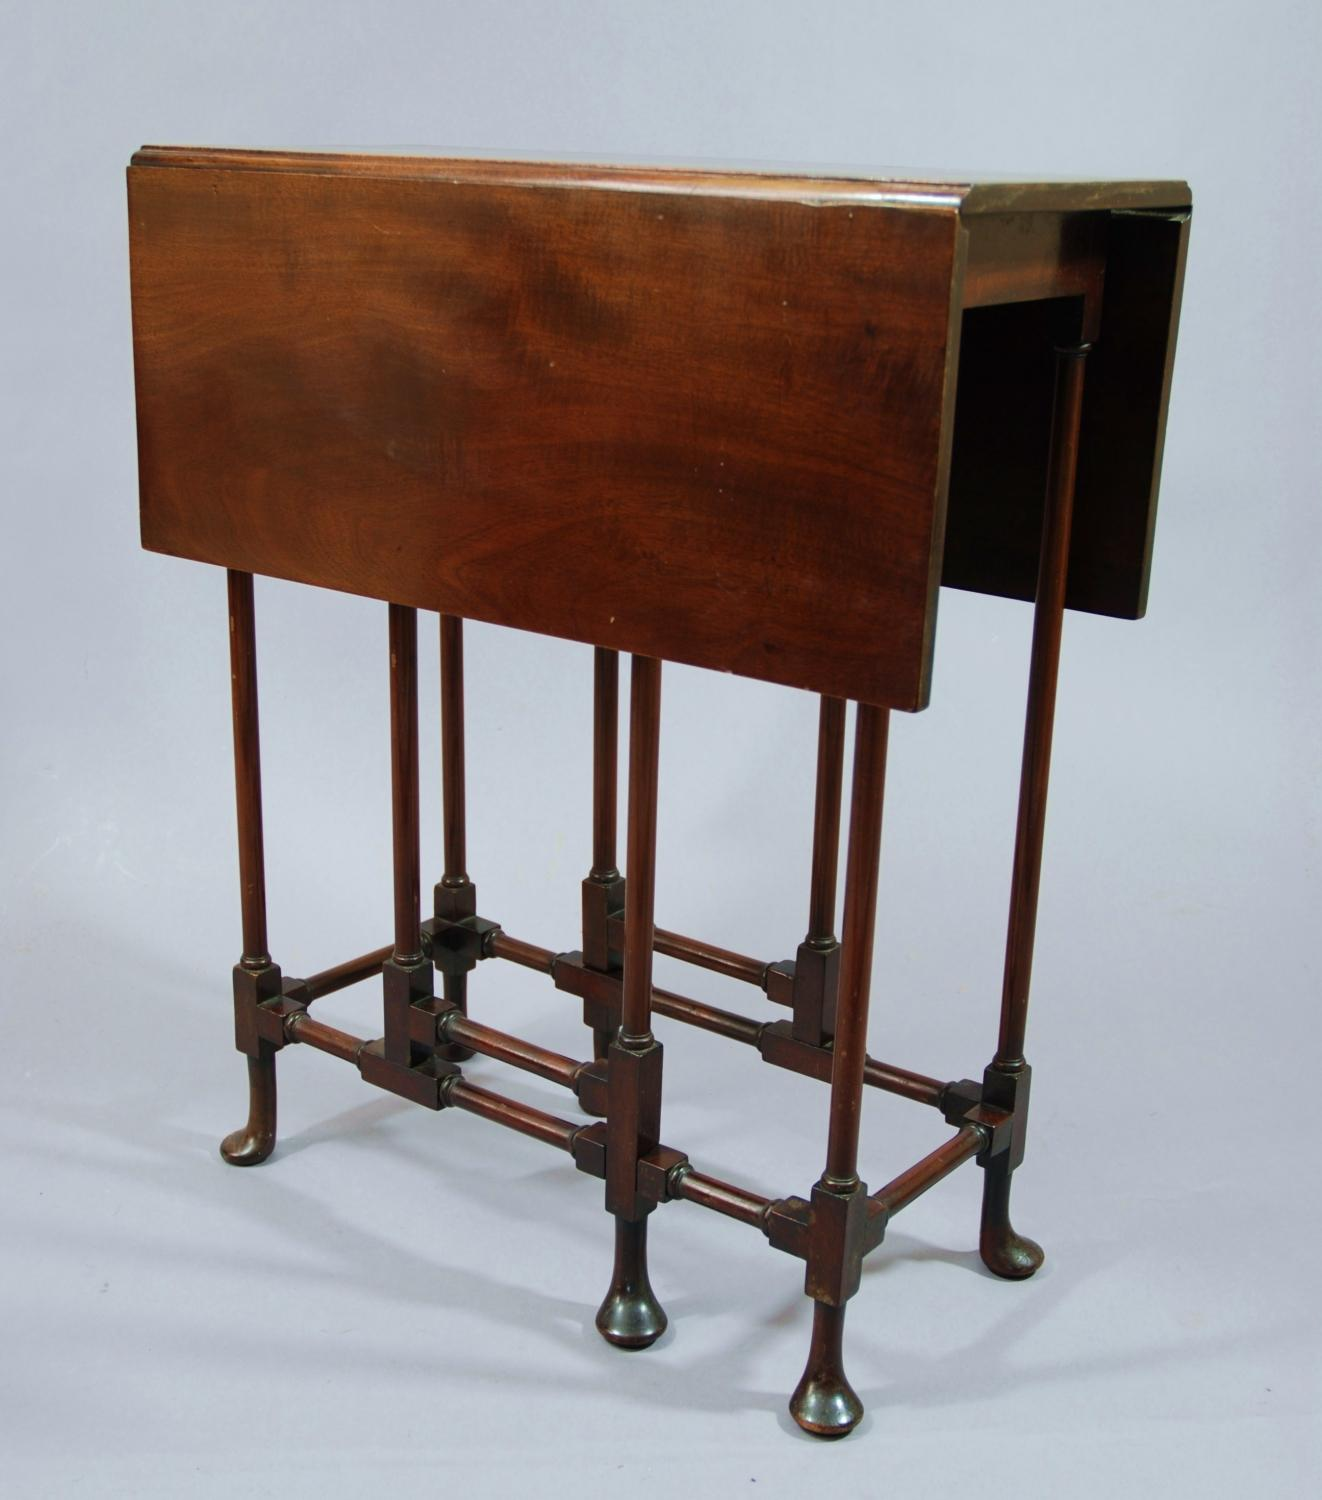 Late 19thc mahogany drop leaf spider table